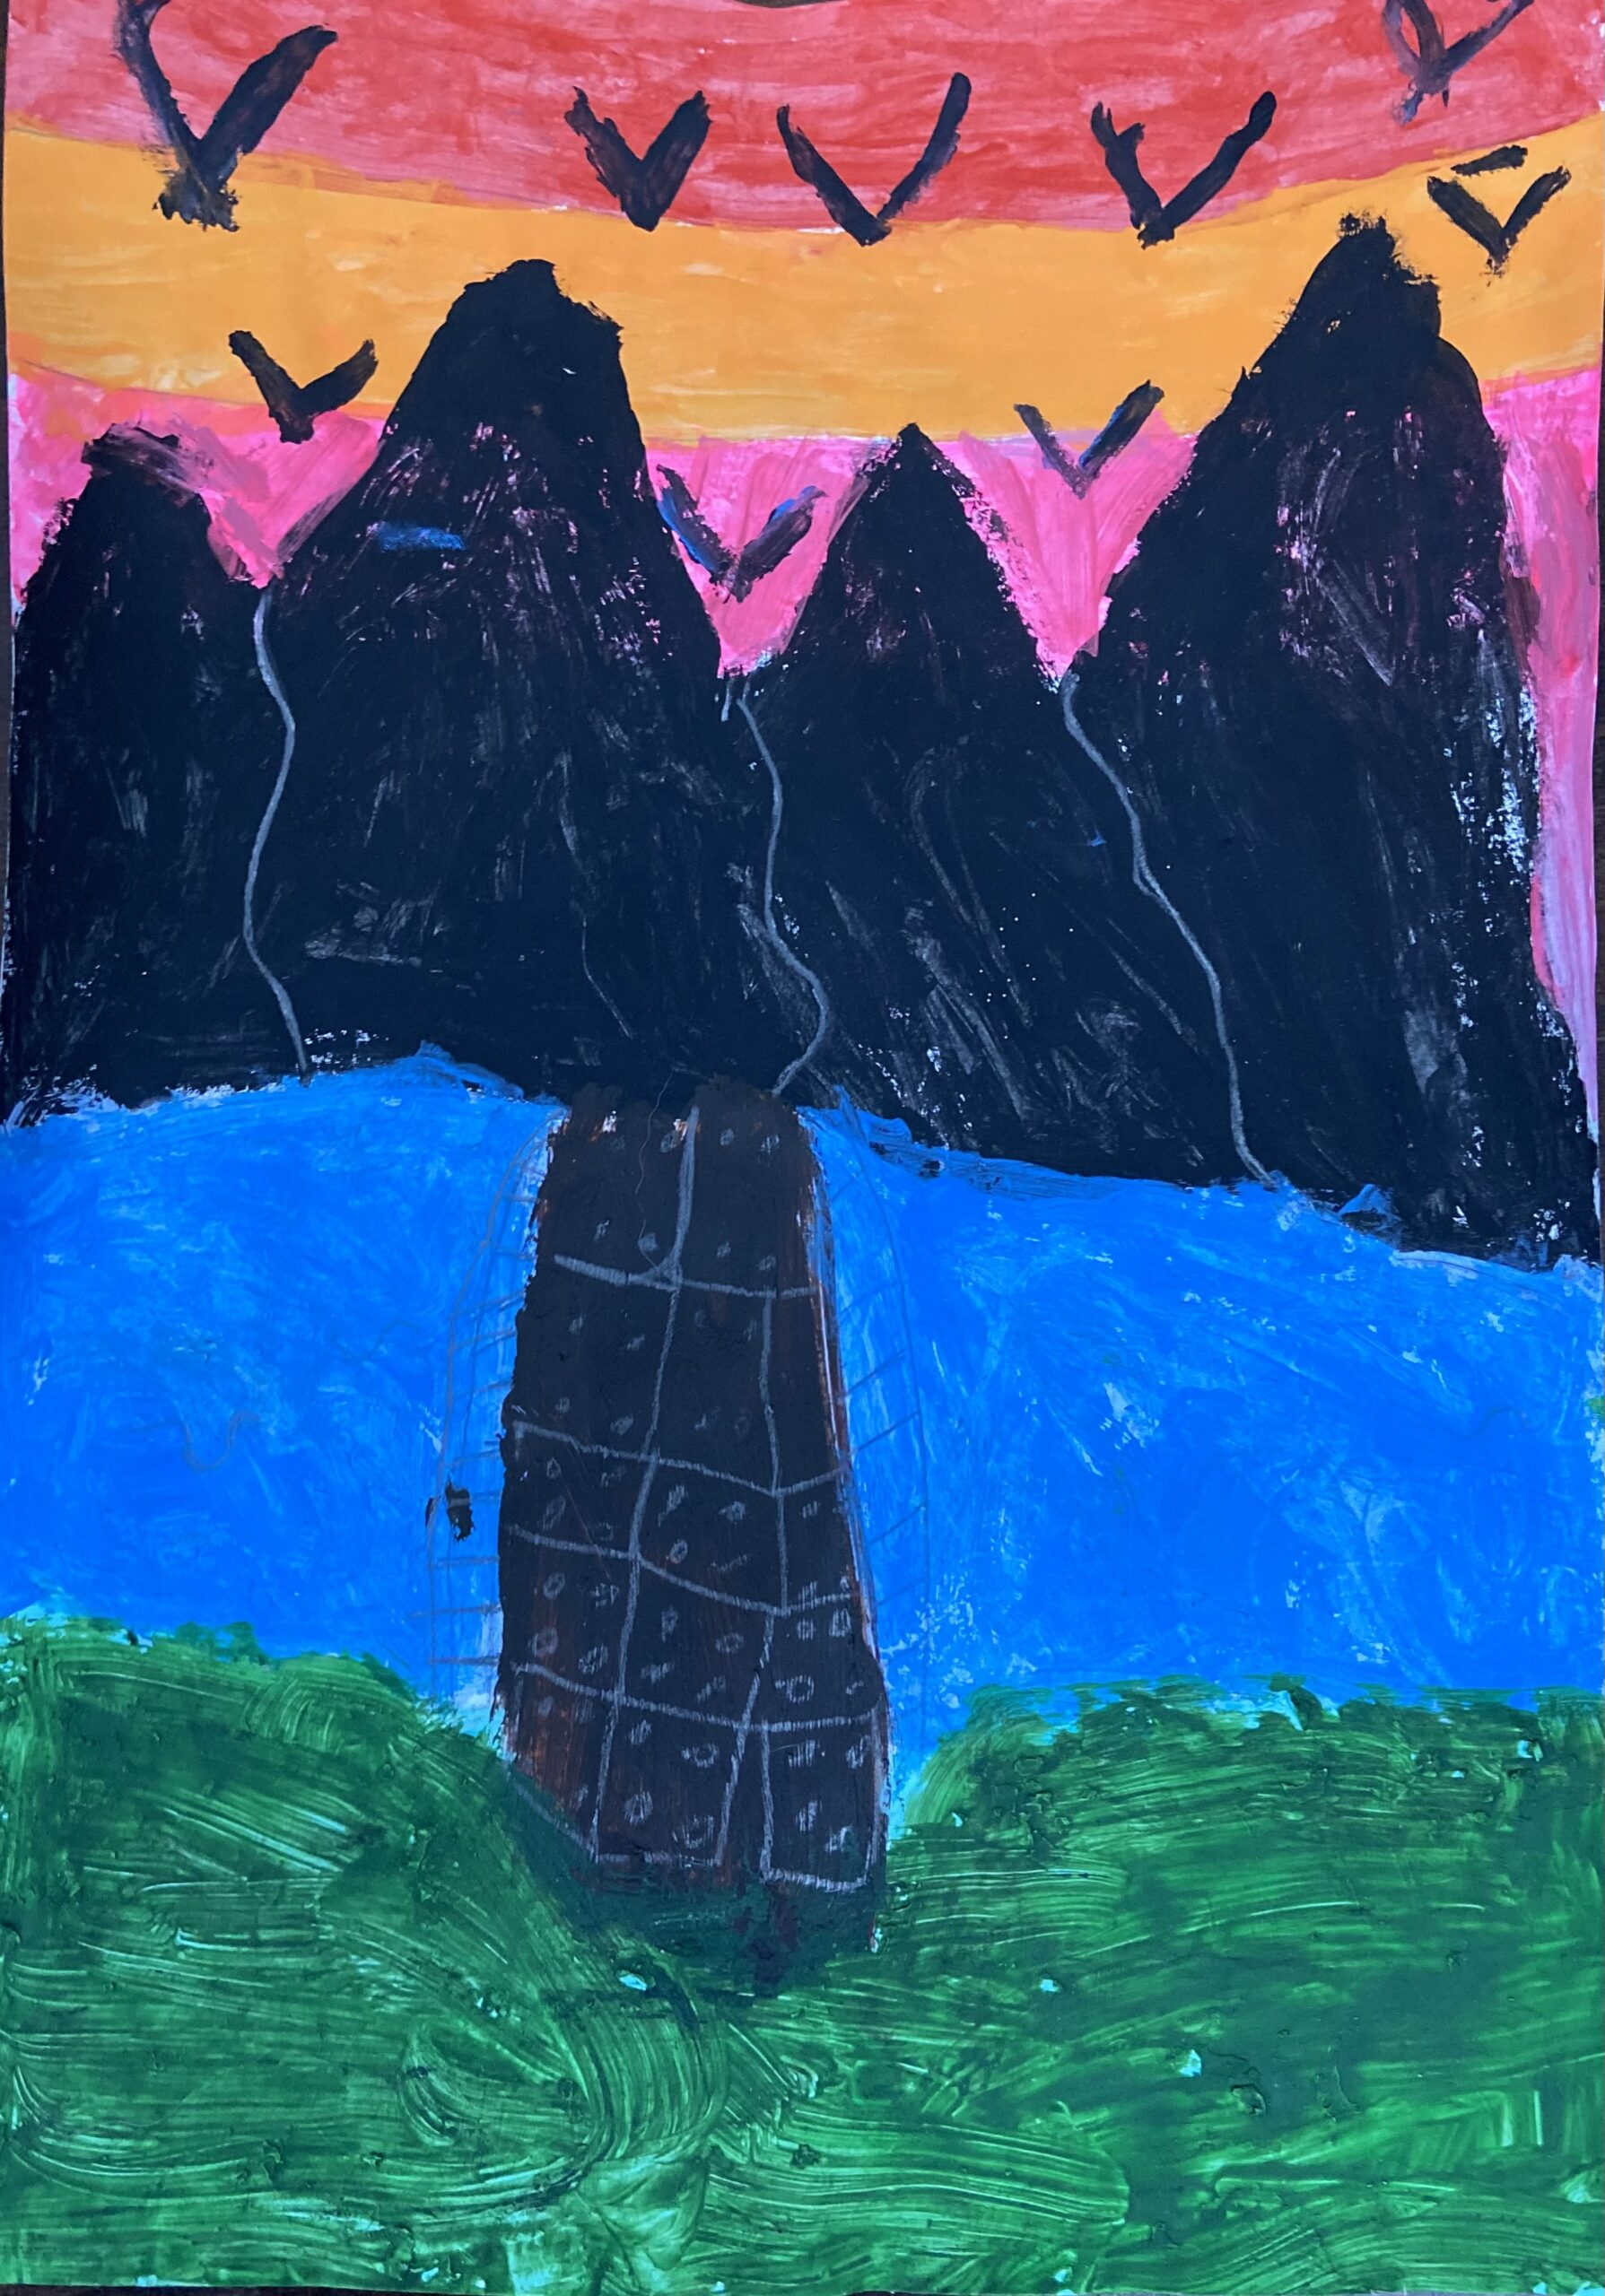 Sunset Mountain by Isabella Panozzo